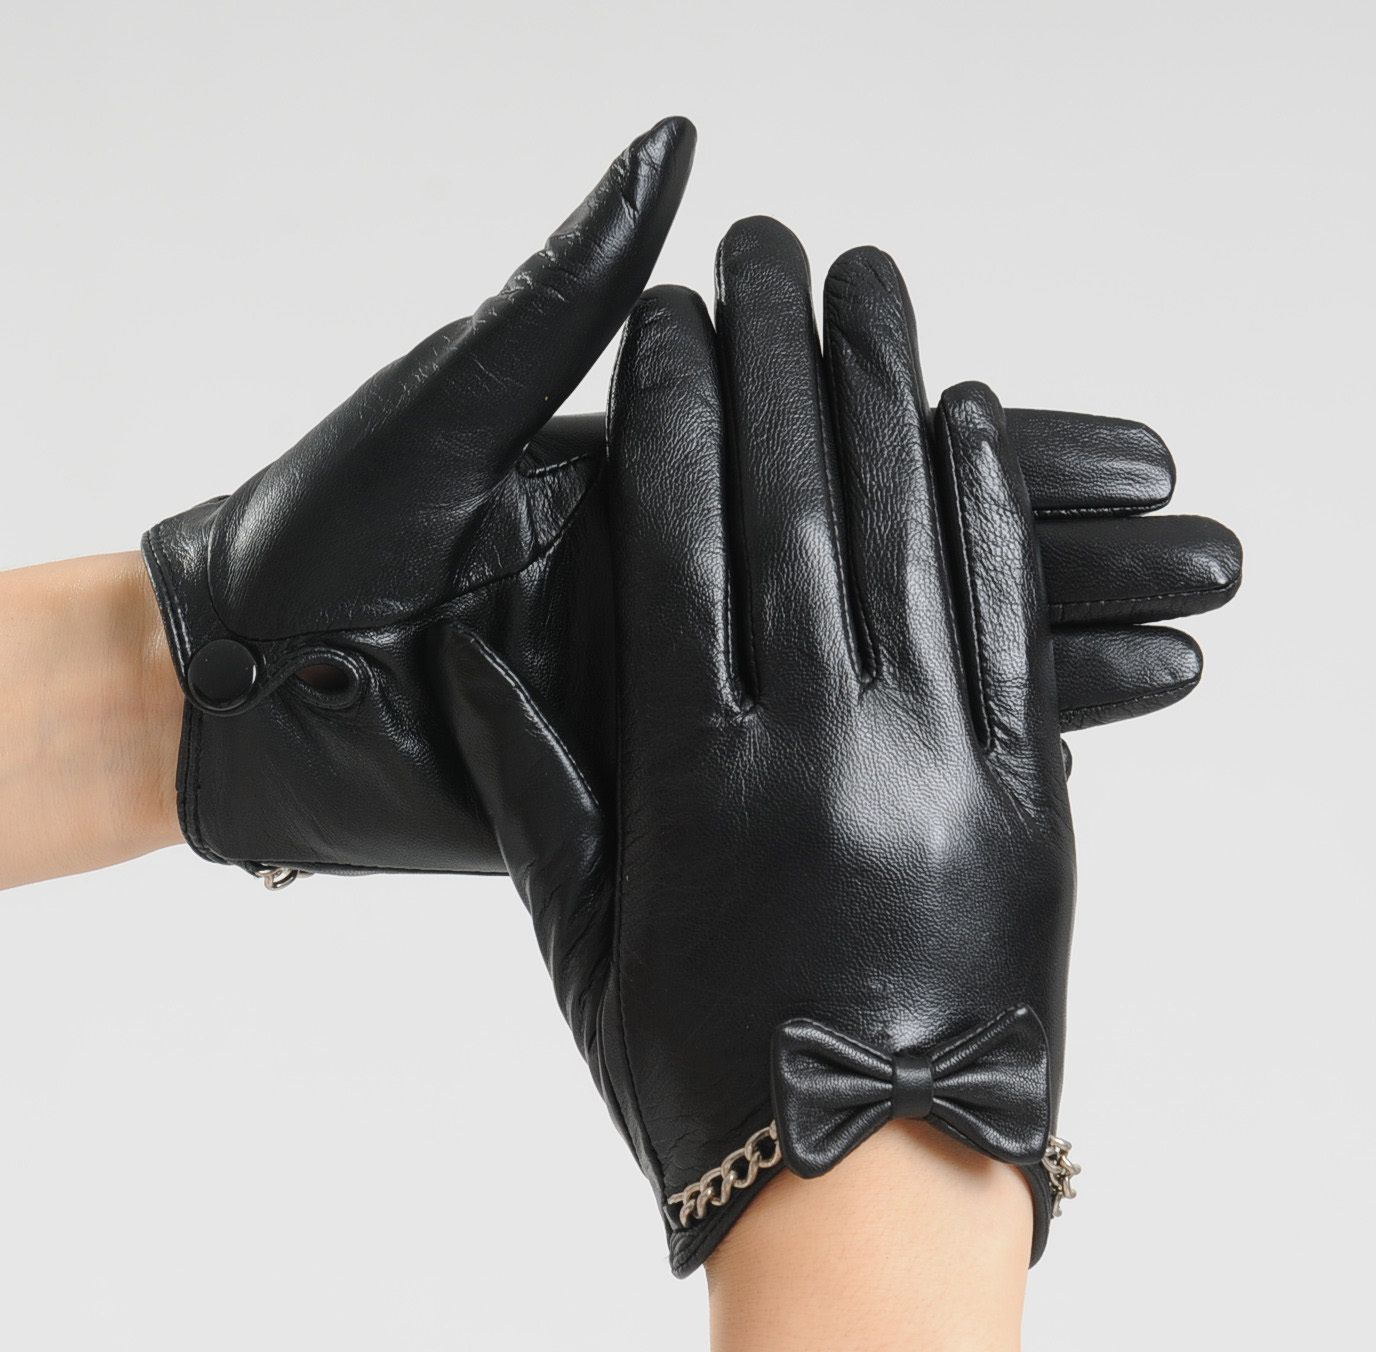 Leather gloves women yahoo image search results